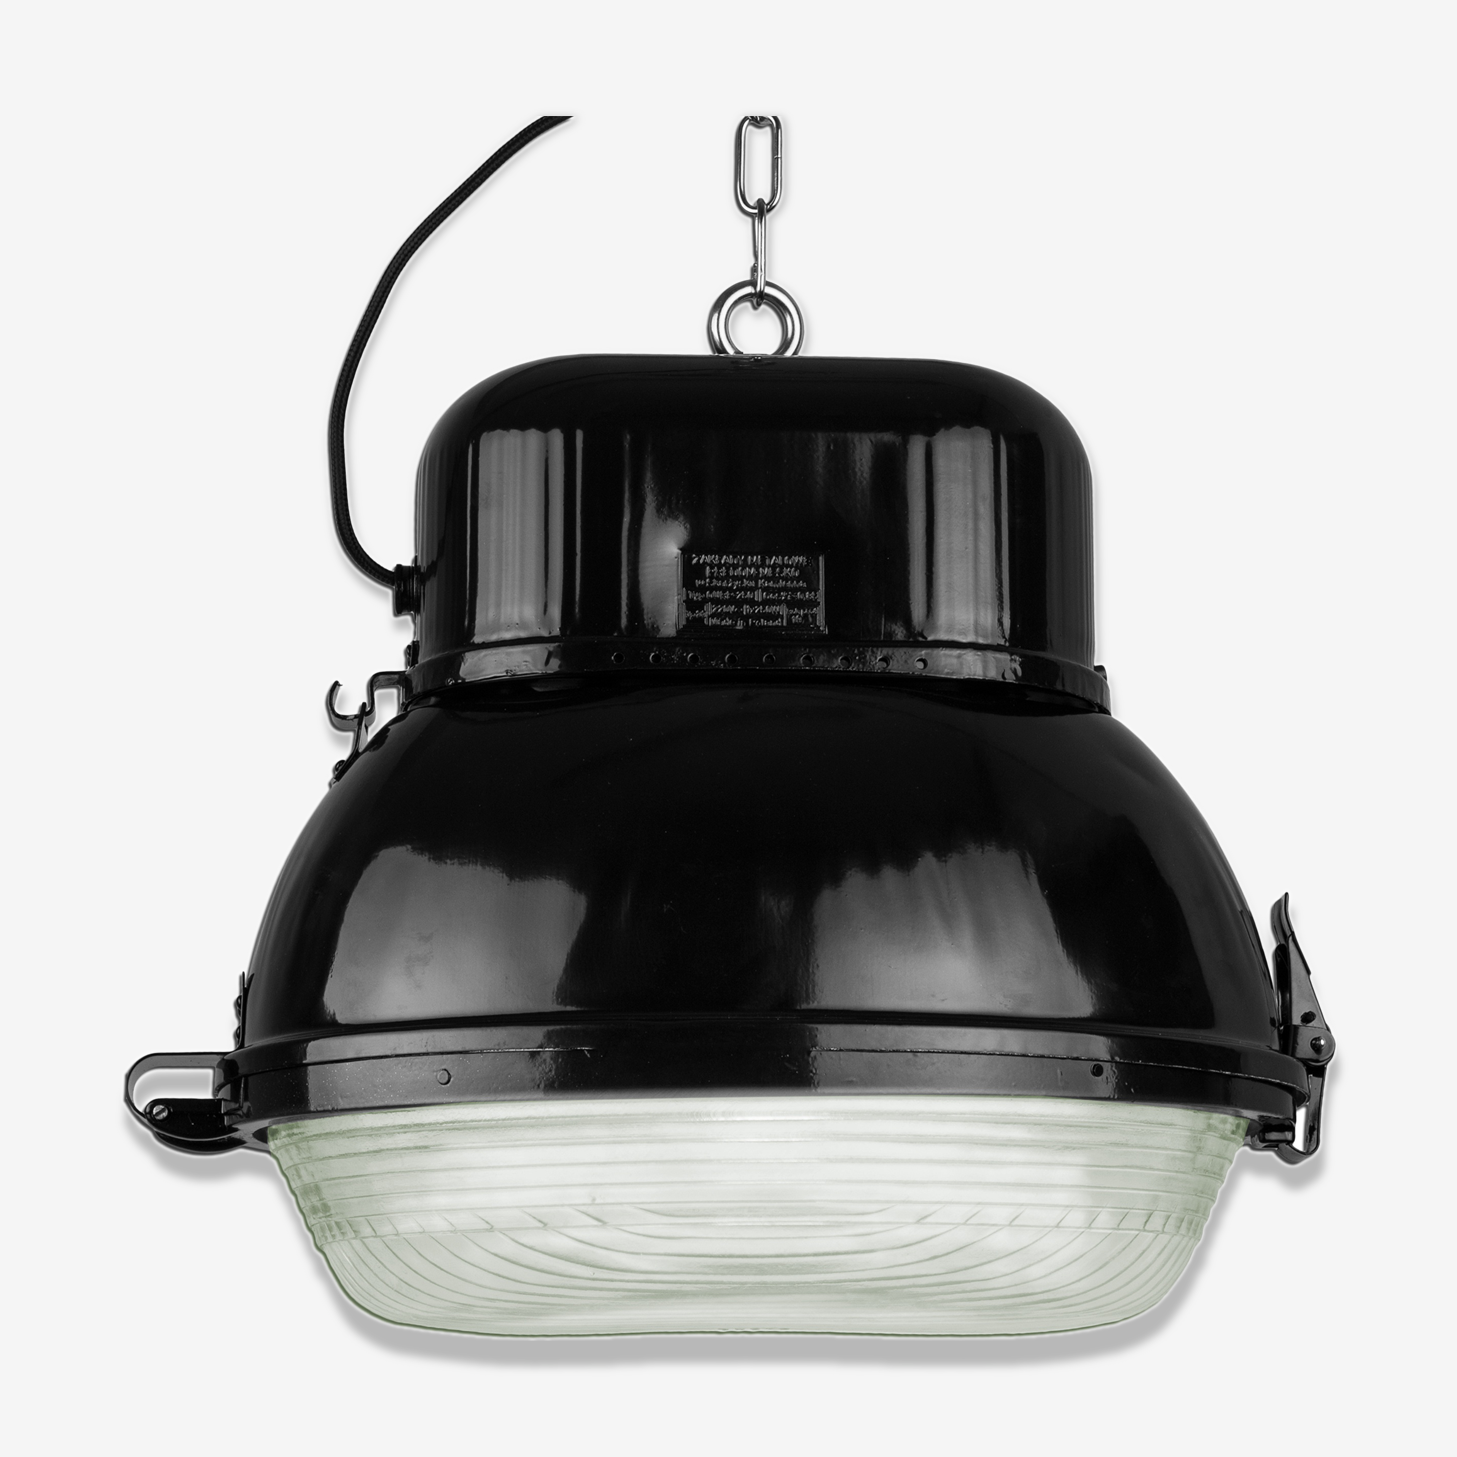 Industrial hanging lamp in black from Mesko, 1960